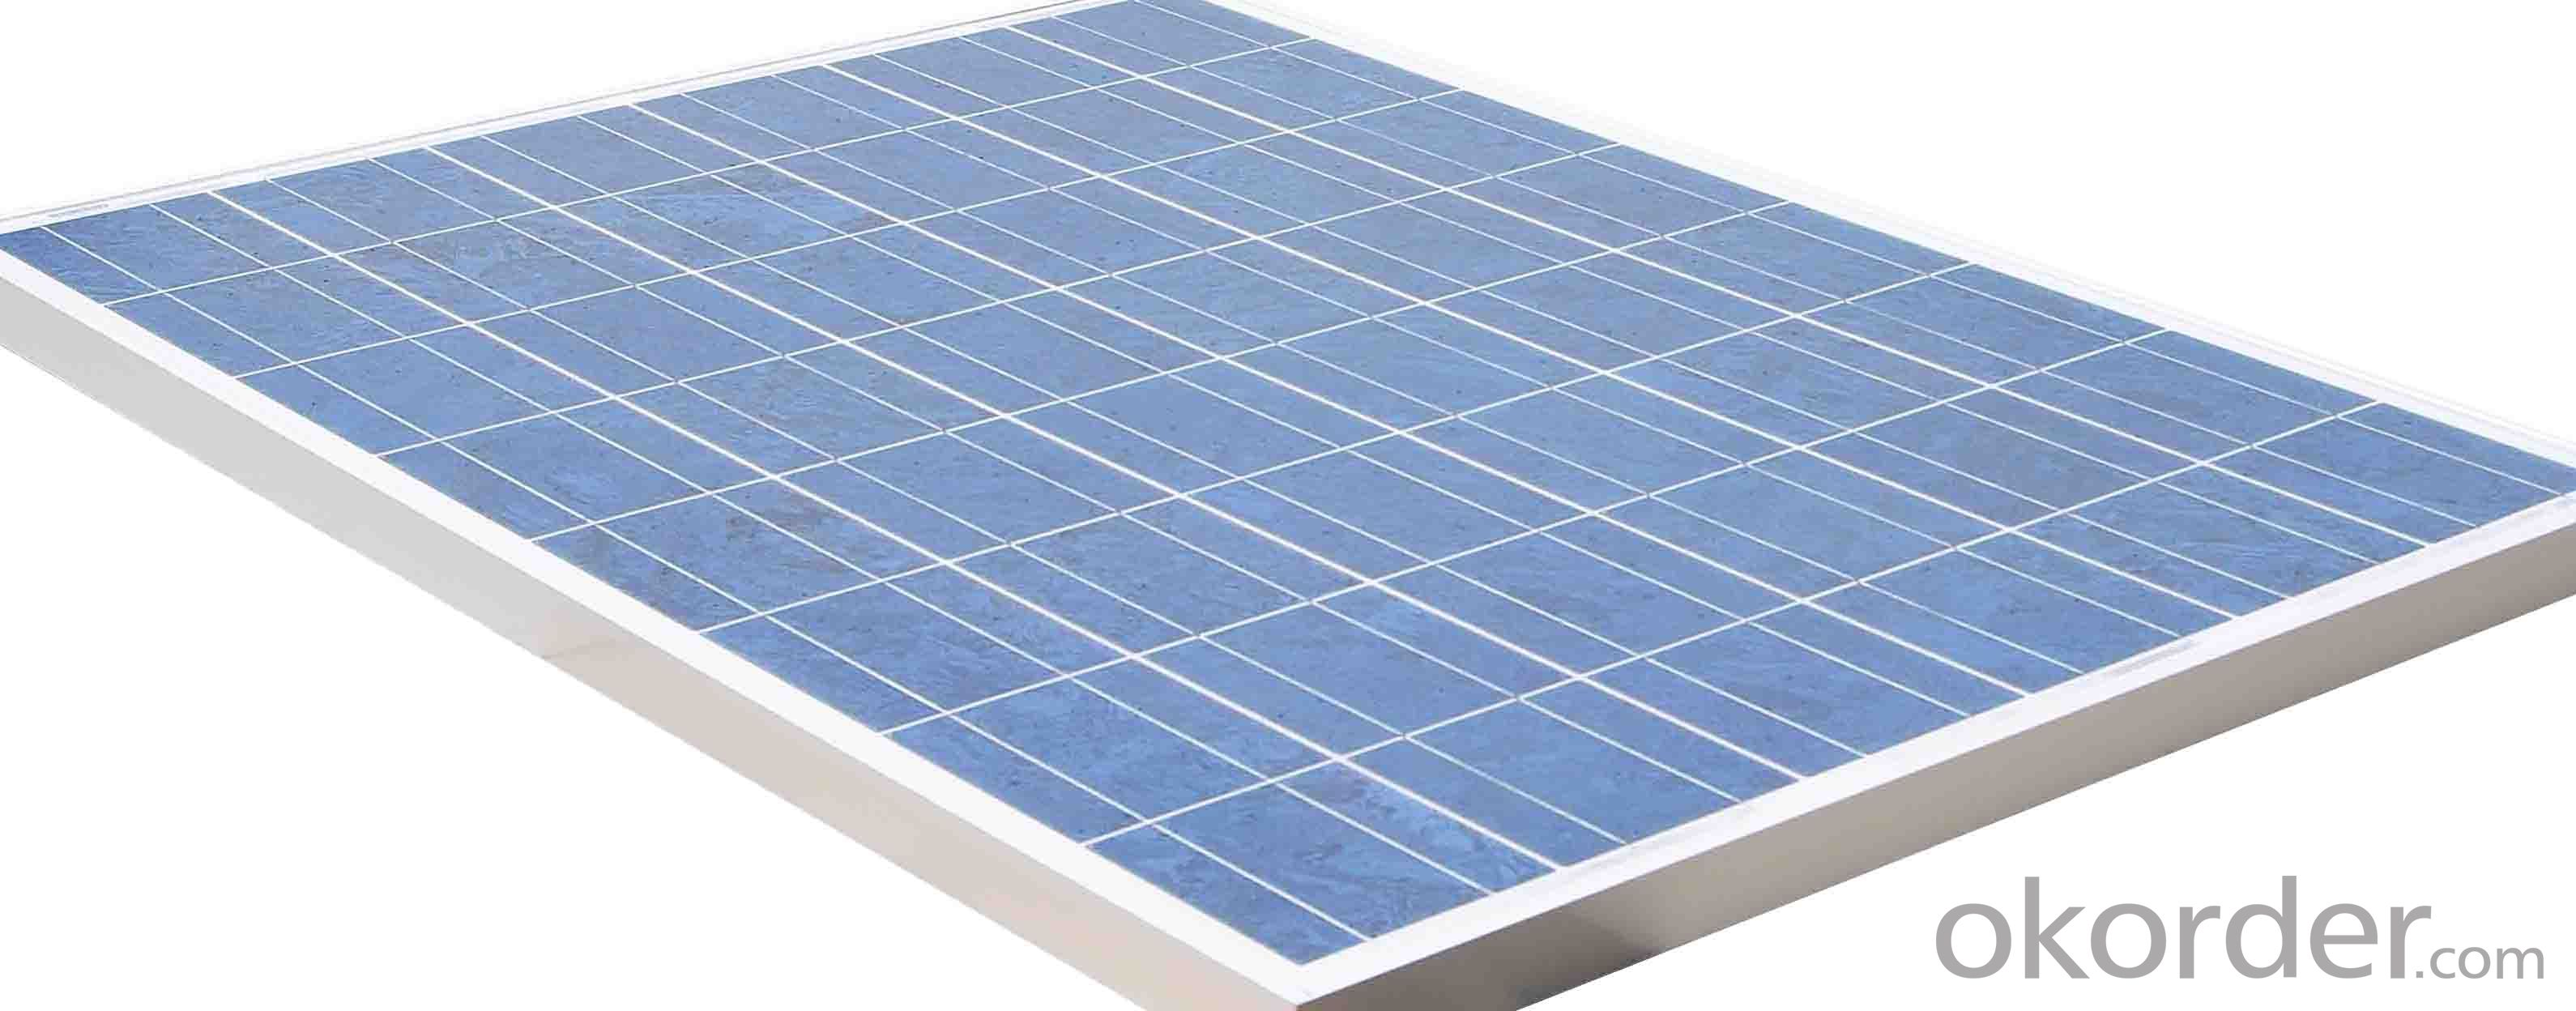 Photovoltaic Solar Panel in Electronic Equipment & Supplier 230W